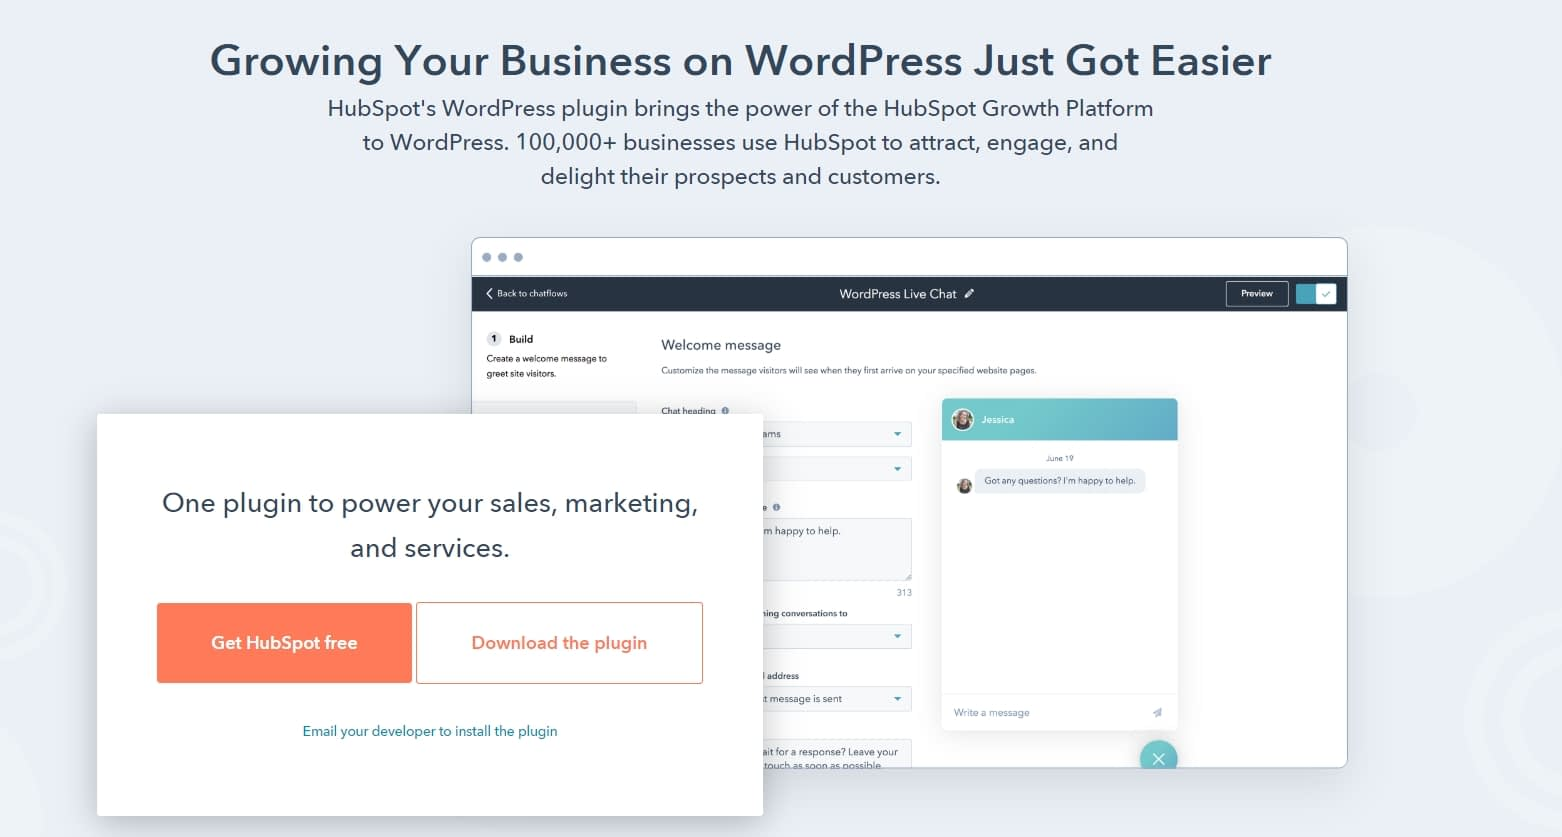 9 Marketing Tools to Use on Your WordPress Site